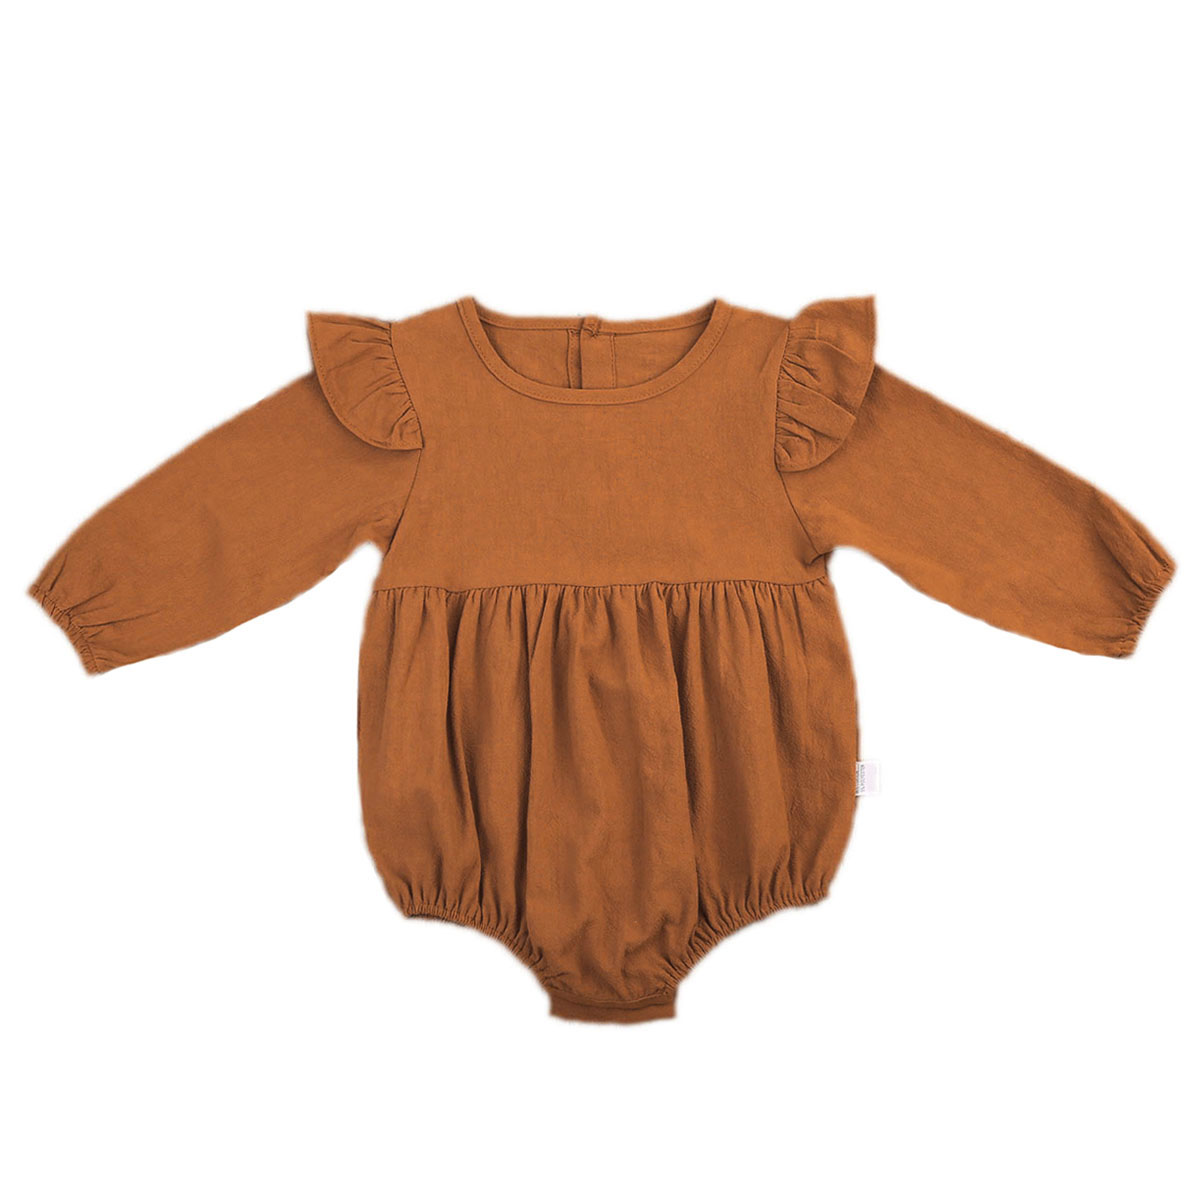 Cute Infant Baby Girls Clothing Autumn Long Sleeve Cotton Romper Toddler Kids Playsuit Outfits puseky 2017 infant romper baby boys girls jumpsuit newborn bebe clothing hooded toddler baby clothes cute panda romper costumes